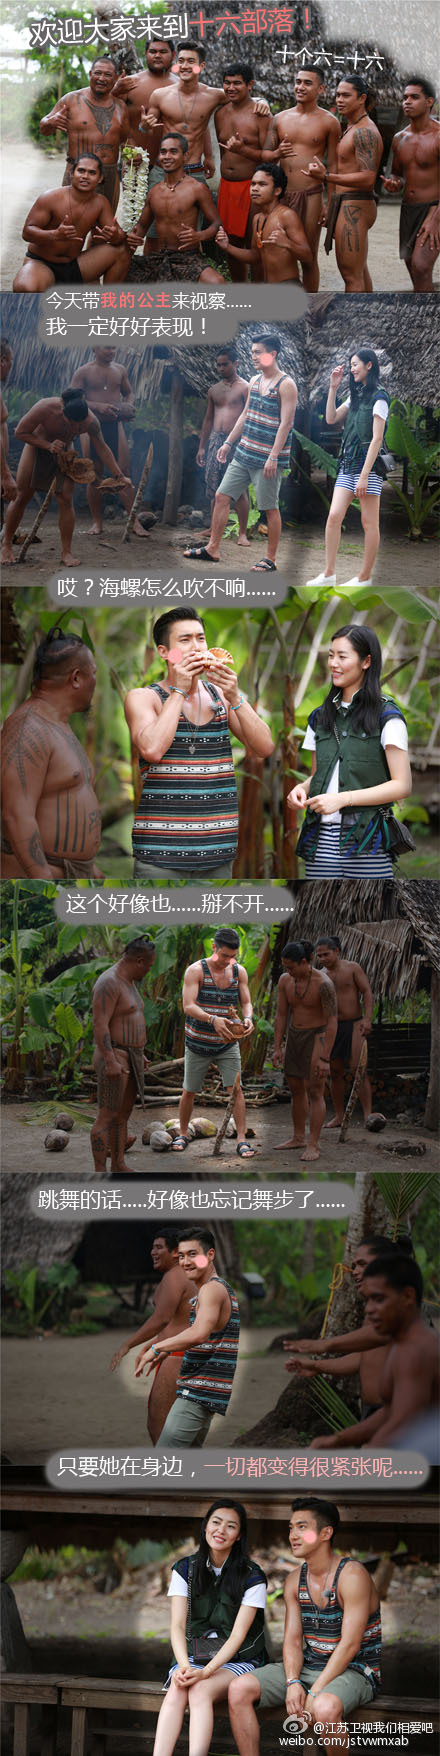 150630~150701 江苏卫视我们相爱吧 Weibo Update with Siwon and Liu Wen (1)